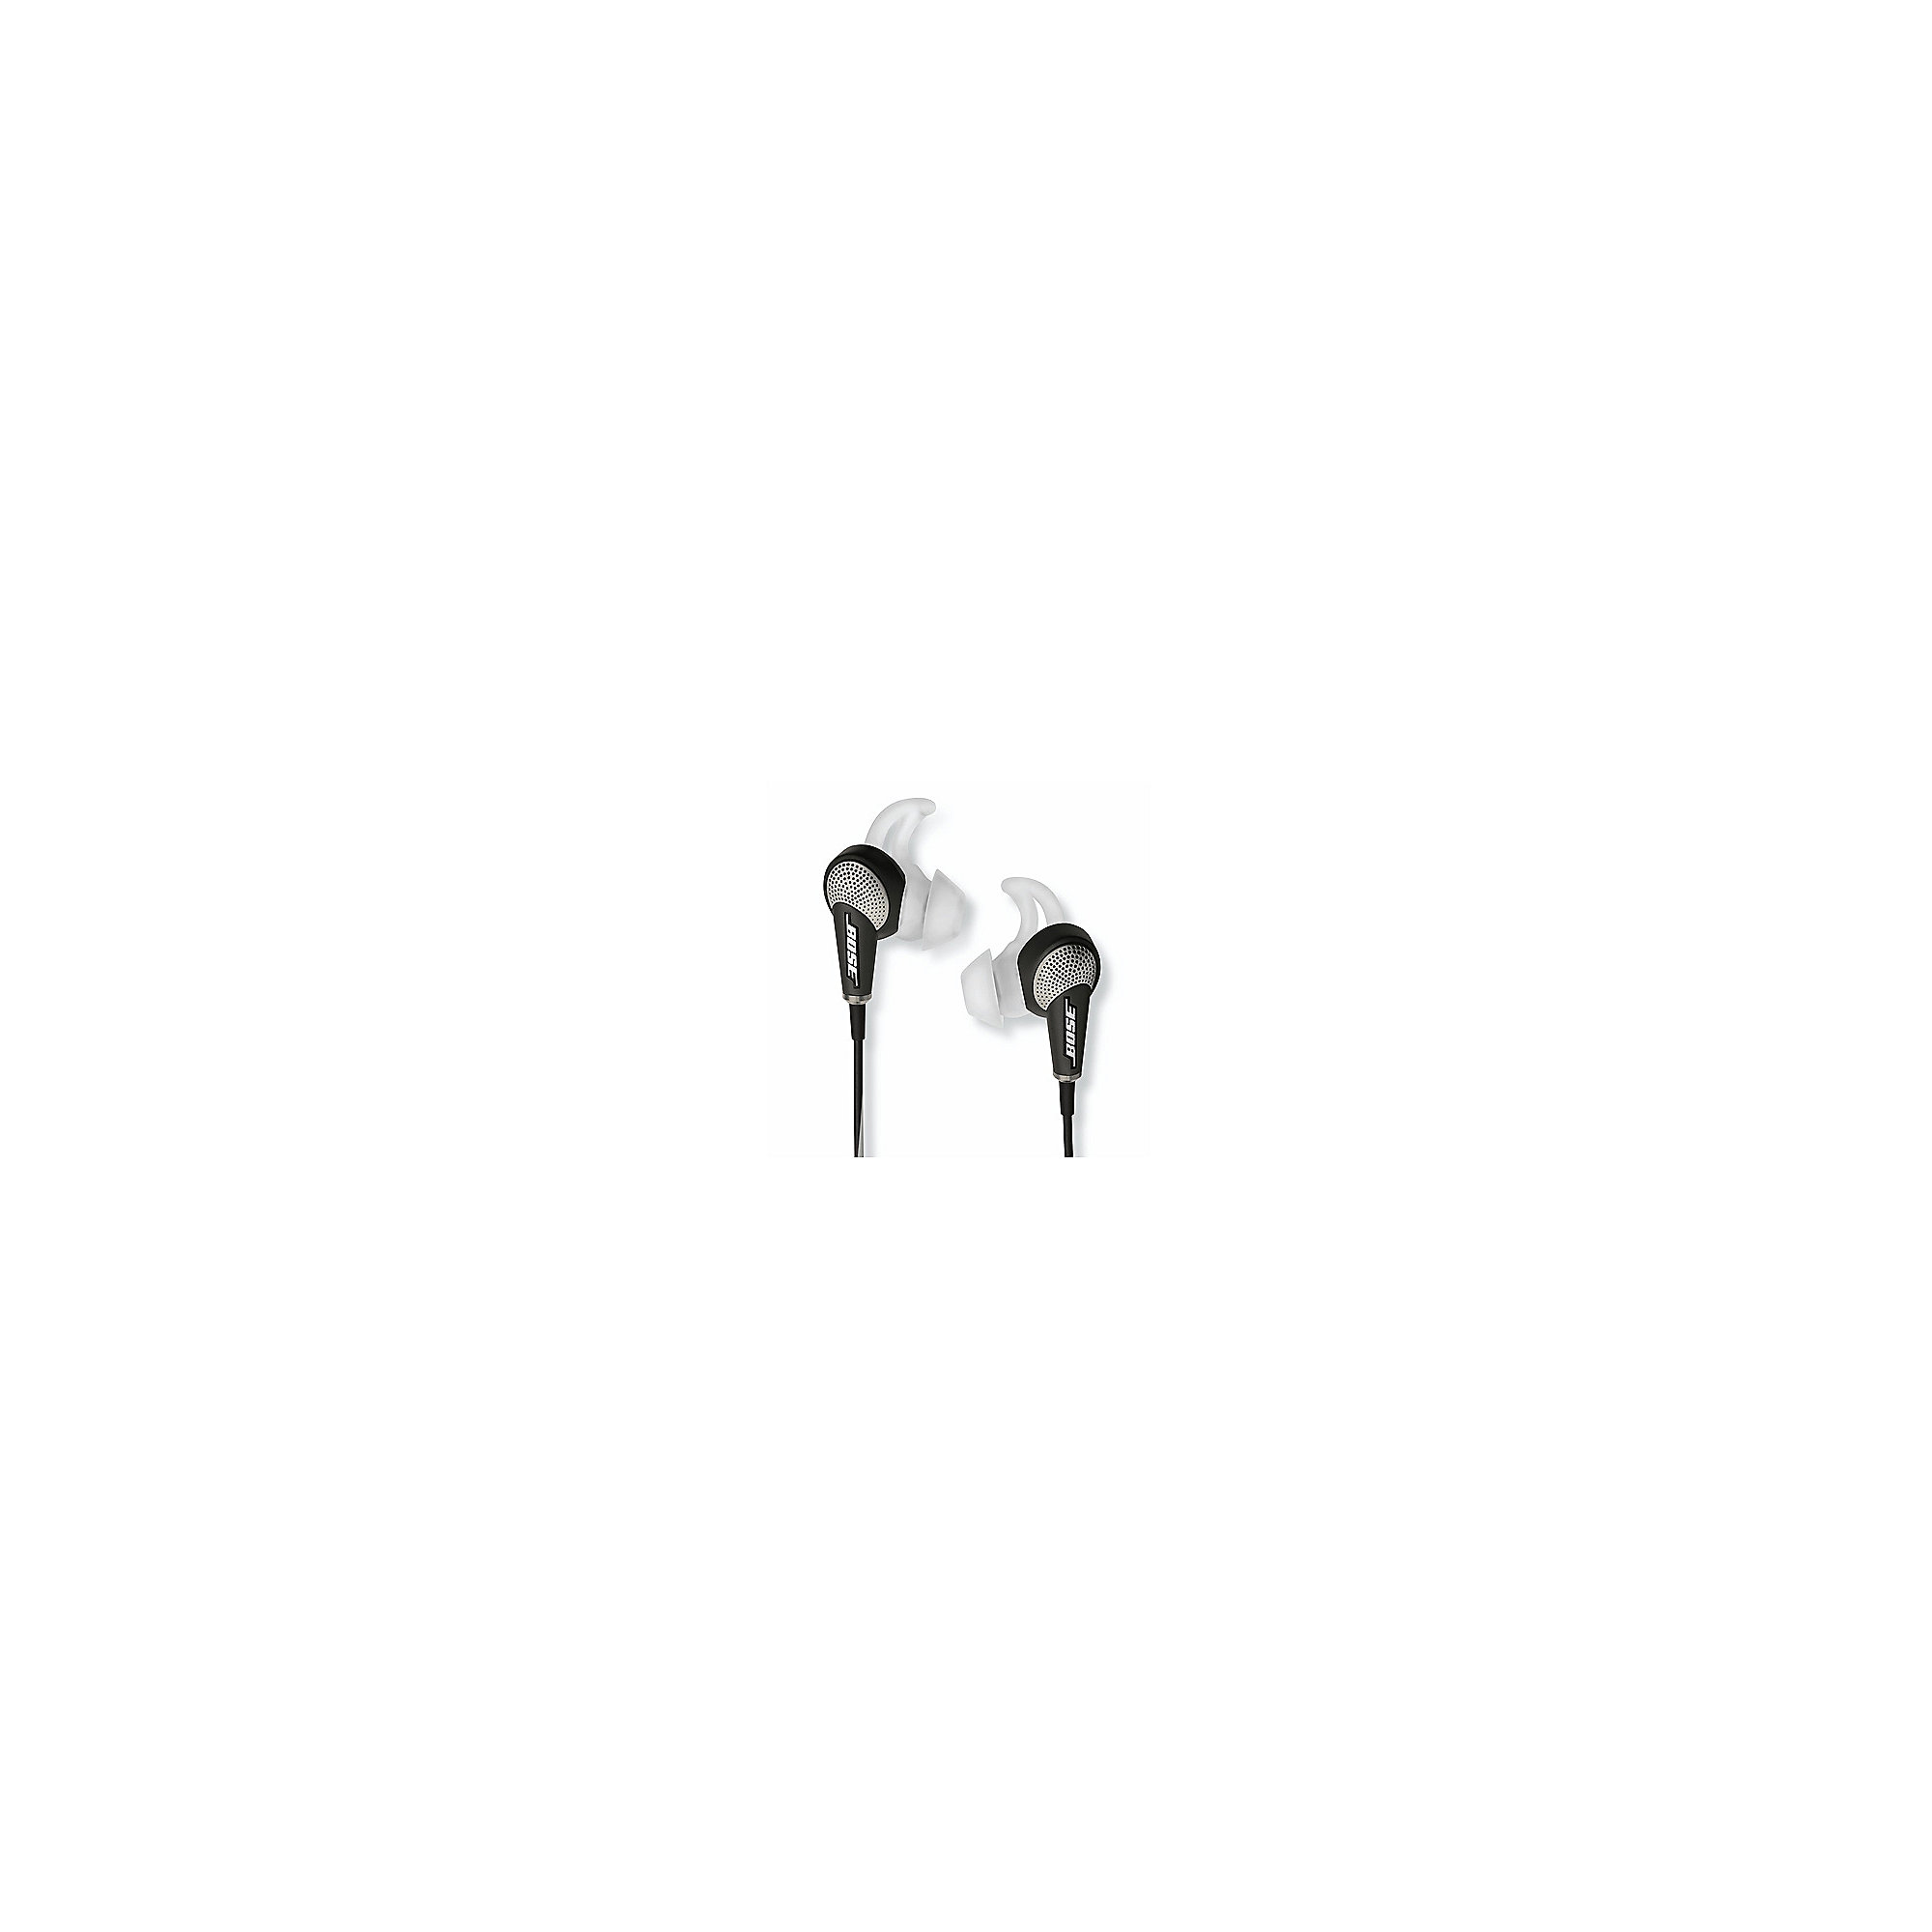 BOSE Quietcomfort 20 Schwarz (Samsung) In Ear Acoustic Noise Cancelling Ohrhörer